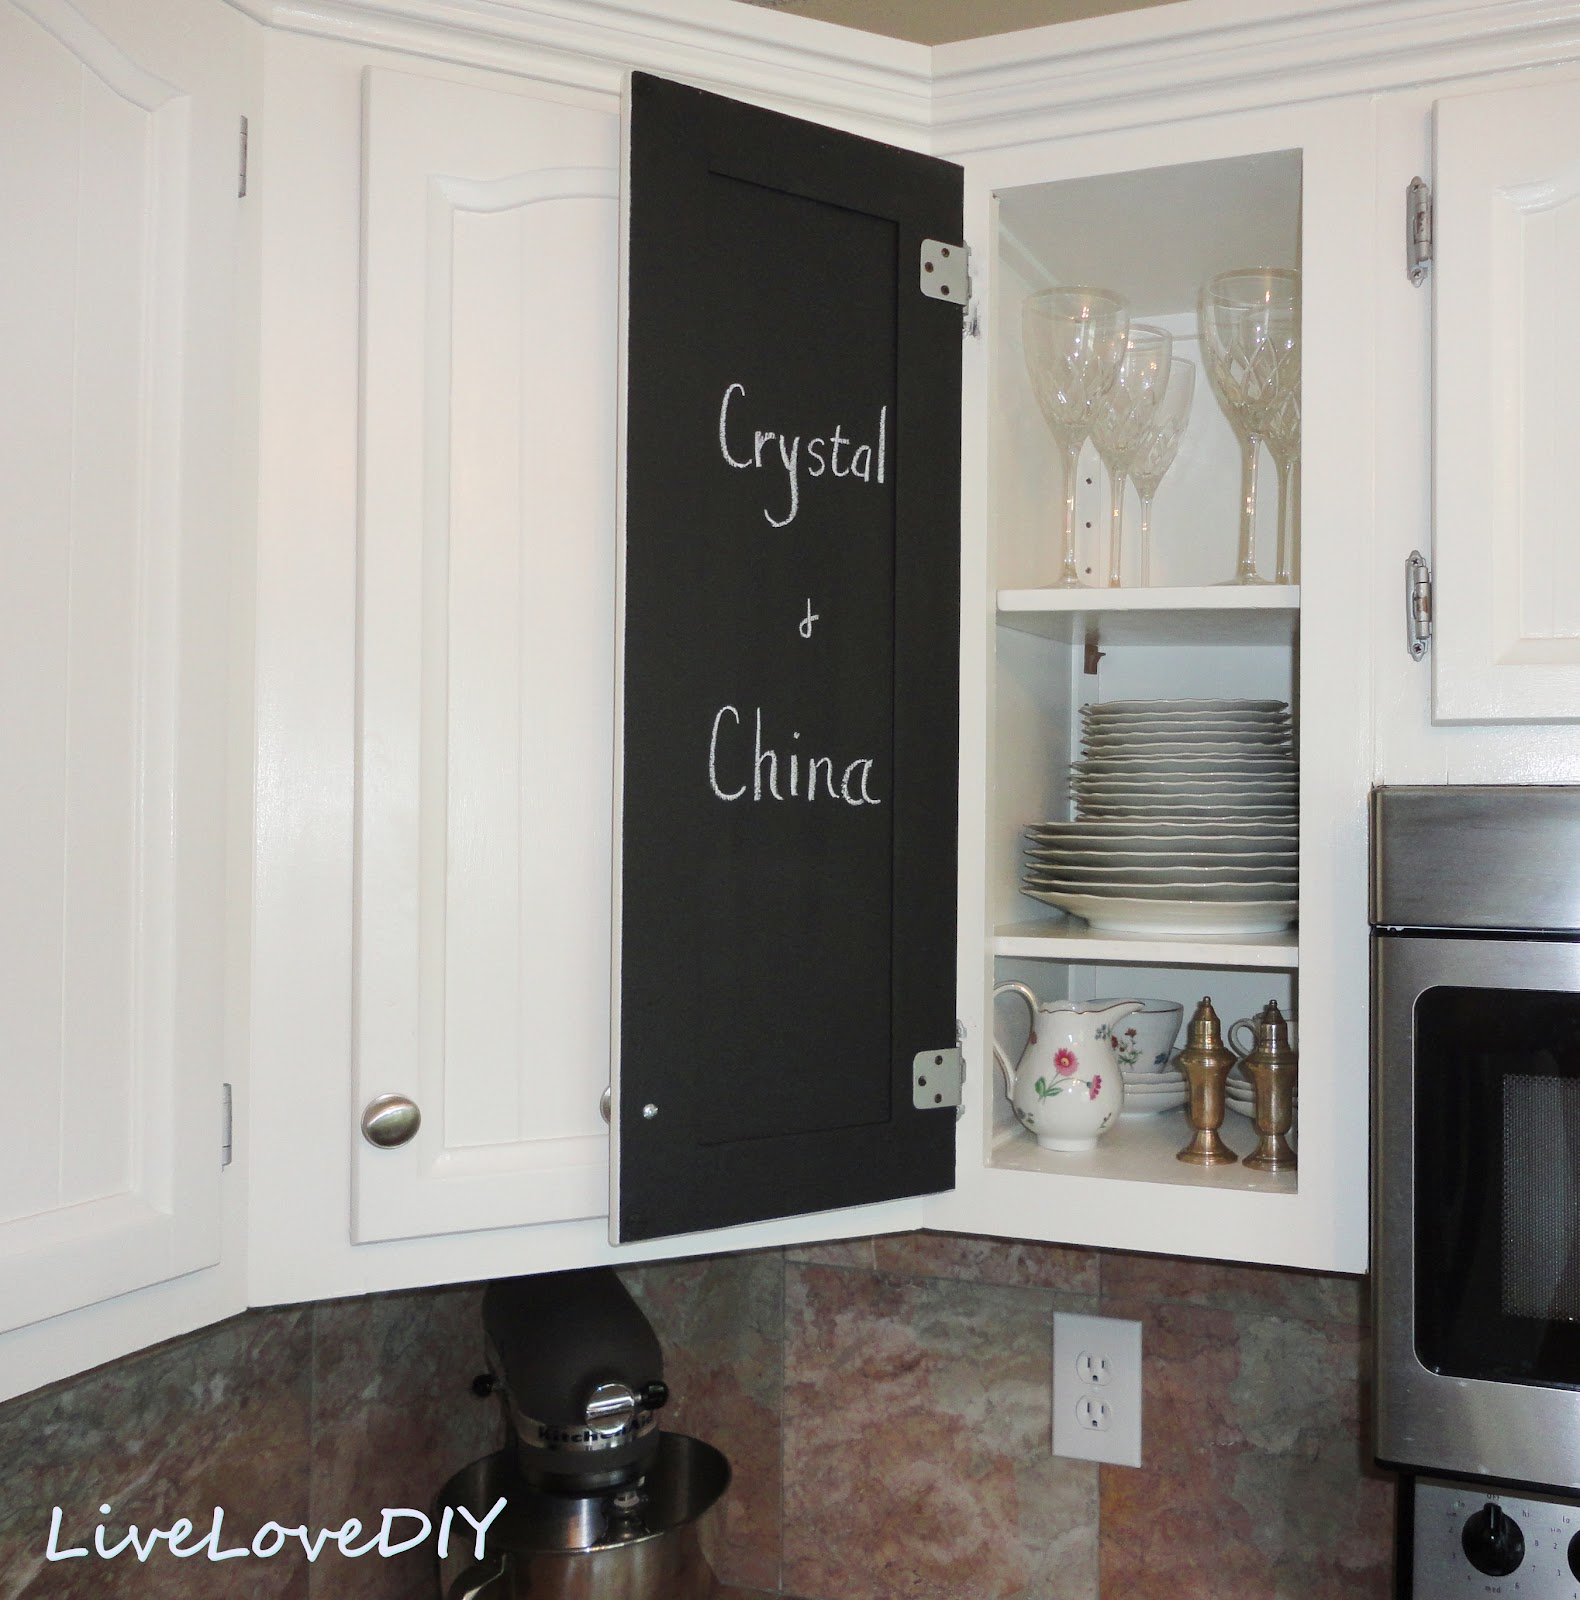 LiveDIY: The Chalkboard Paint Kitchen Cabinet Makeover on painting cabinets white, painting wooden cabinets, painting kitchen cabinet doors only, painting kitchen cabinet doors colors, painting cabinets without sanding, painting kitchen drawers, painting inside bookshelves, painting an old kitchen, painting inside walls, painting cabinets two different colors, color inside cabinets, painting inside painting, painting inside glass, painting inside fireplaces, painting inside drawers, painting pressboard cabinets, painting inside doors, painting inside of bookcases, painting stained cabinets, painting trailer house cabinets,